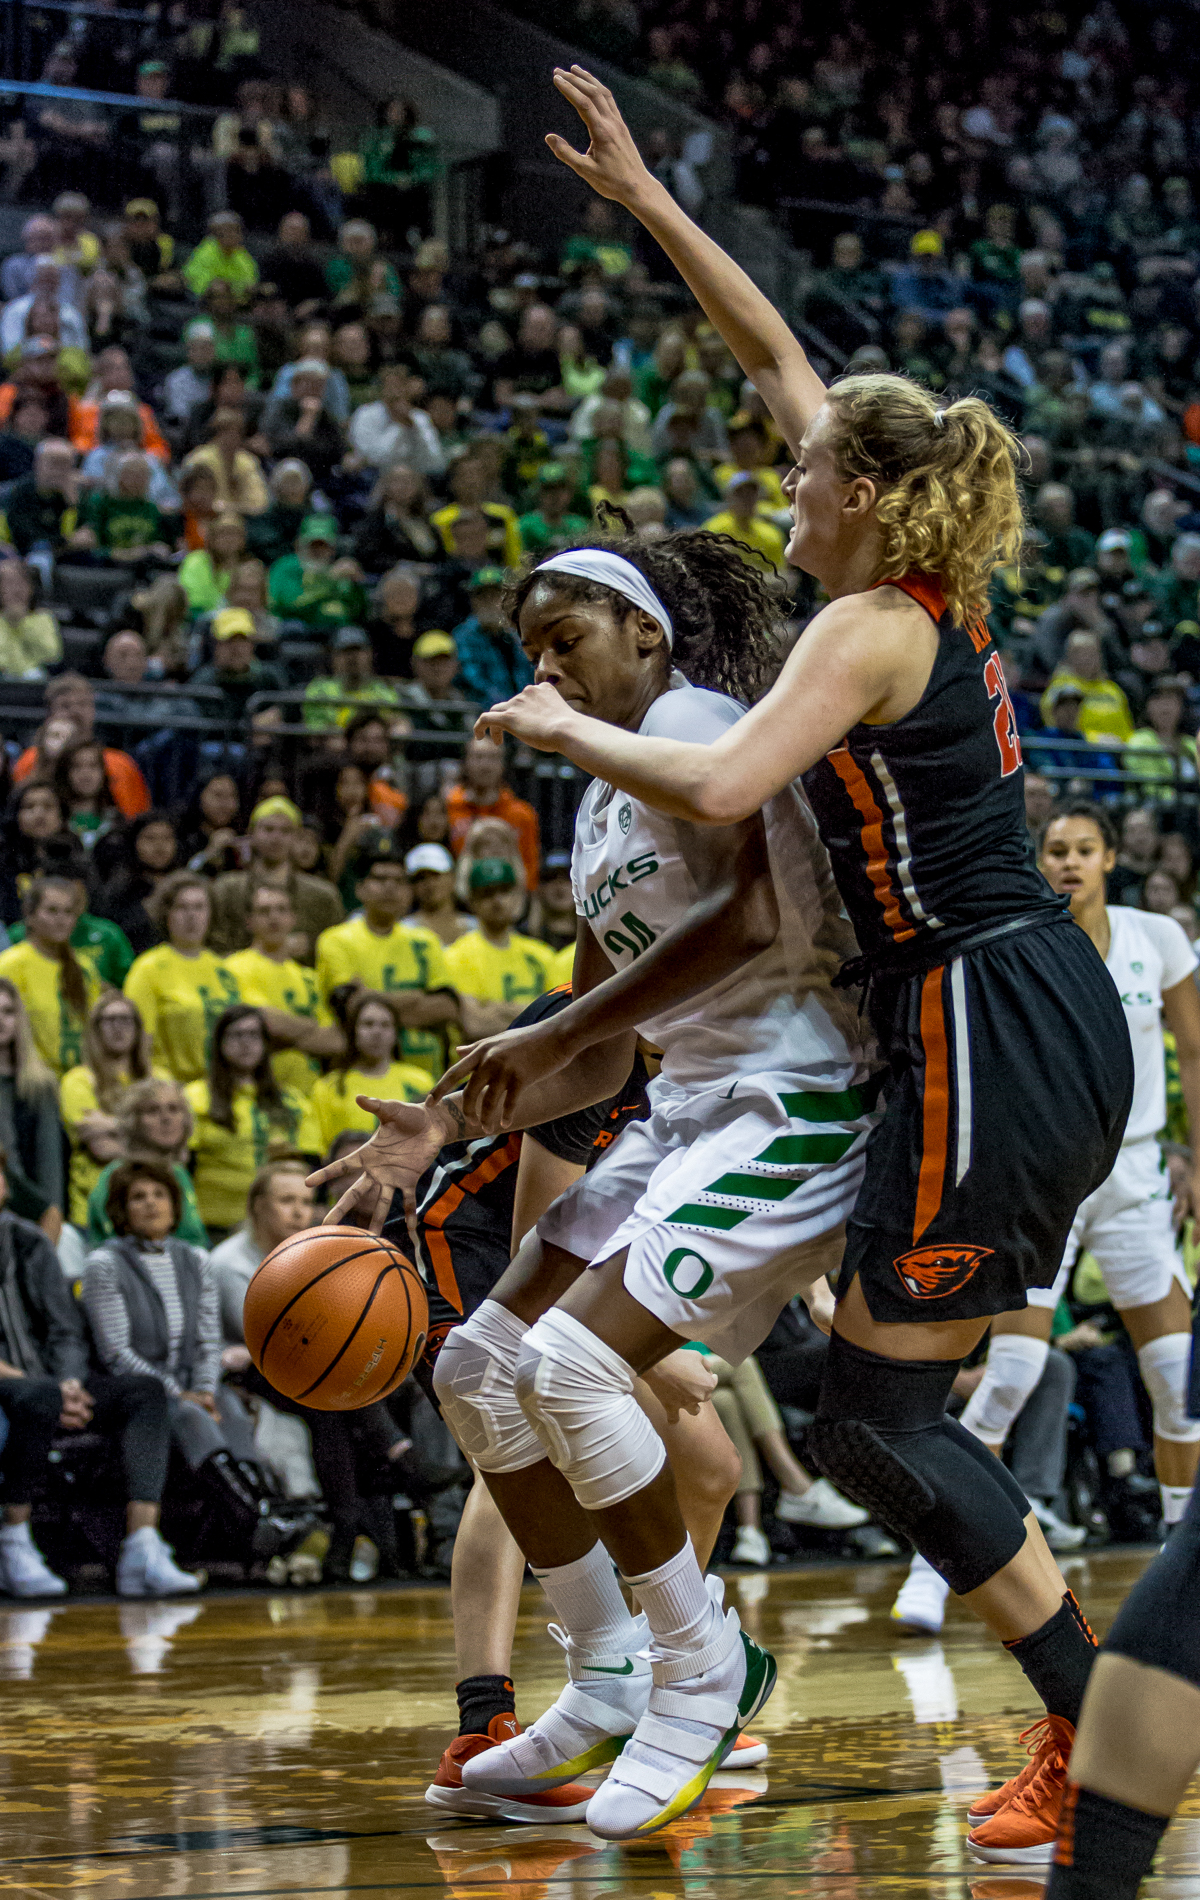 Oregon forward Ruthy Hebard (#24) tries to create space from Oregon State center Marie Gülich (#21). The Oregon Ducks defeated the Oregon State Beavers 75-63 on Sunday afternoon in front of a crowd of 7,249 at Matthew Knight Arena. The Ducks and Beavers split the two game Civil War with the Beavers defeating the Ducks on Friday night in Corvallis. The Ducks had four players in double digits: Satou Sabally with 21 points, Maite Cazorla with 16, Sabrina Ionescu with 15, and Mallory McGwire with 14. The Ducks shot 48.4% from the floor compared to the Beavers 37.3%. The Ducks are now 7-1 in conference play. Photo by Ben Lonergan, Oregon News Lab